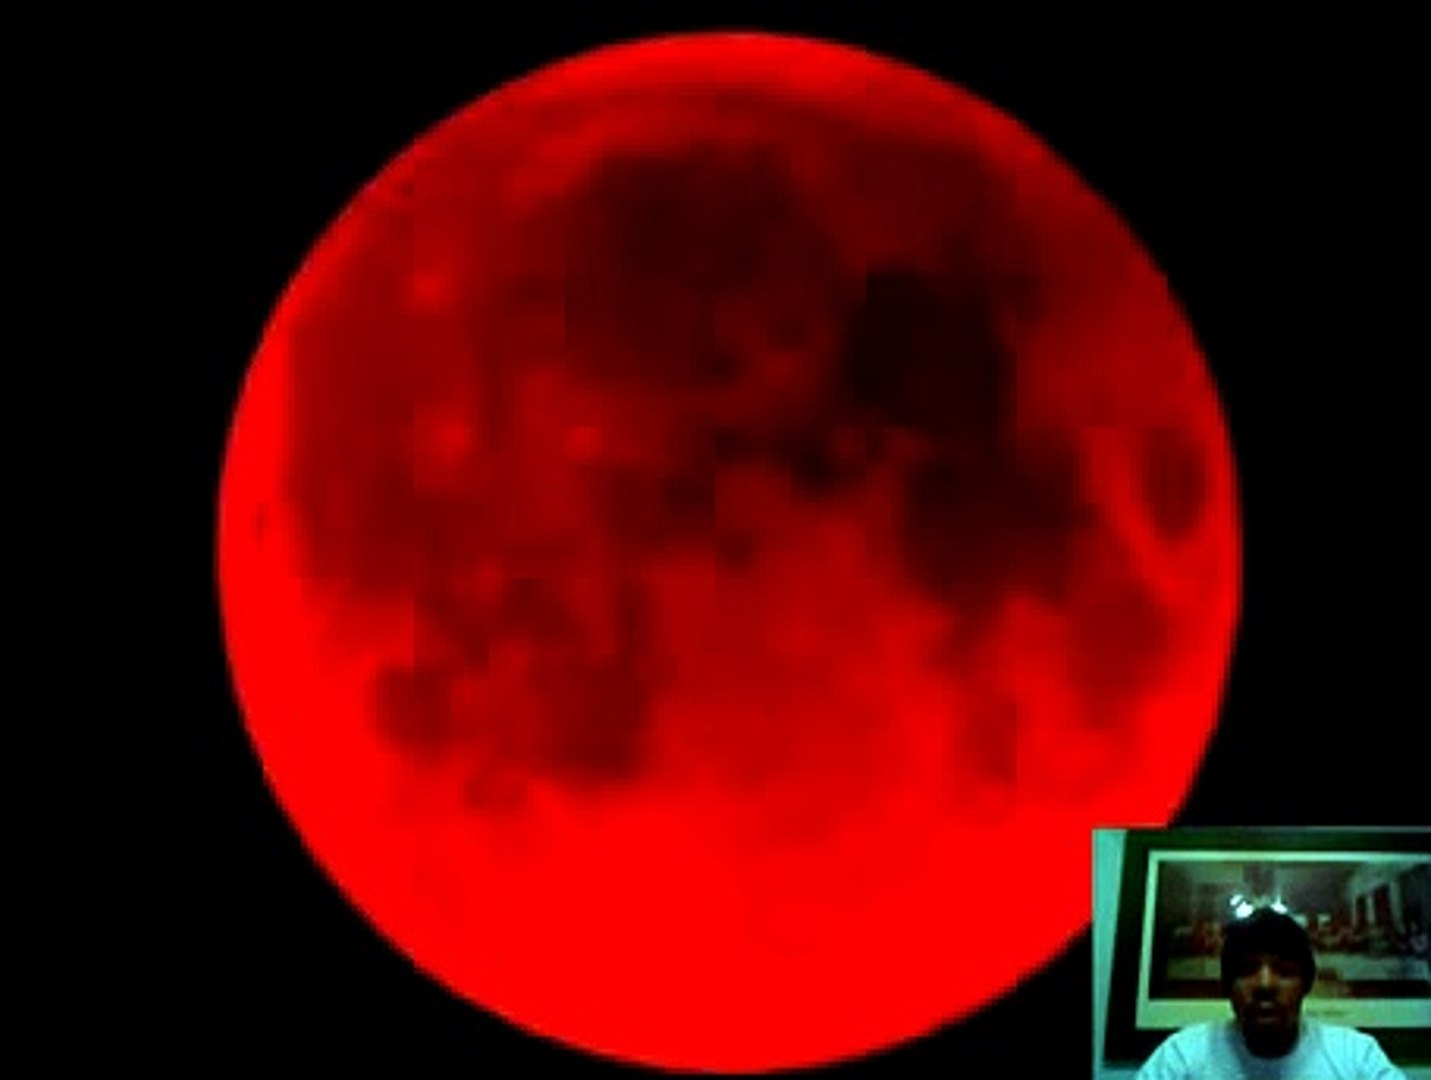 A DREAM FROM THE LORD 1-26-13 BLOOD MOON GREAT & TERRIBLE DAY OF THE LORD COMING SOON